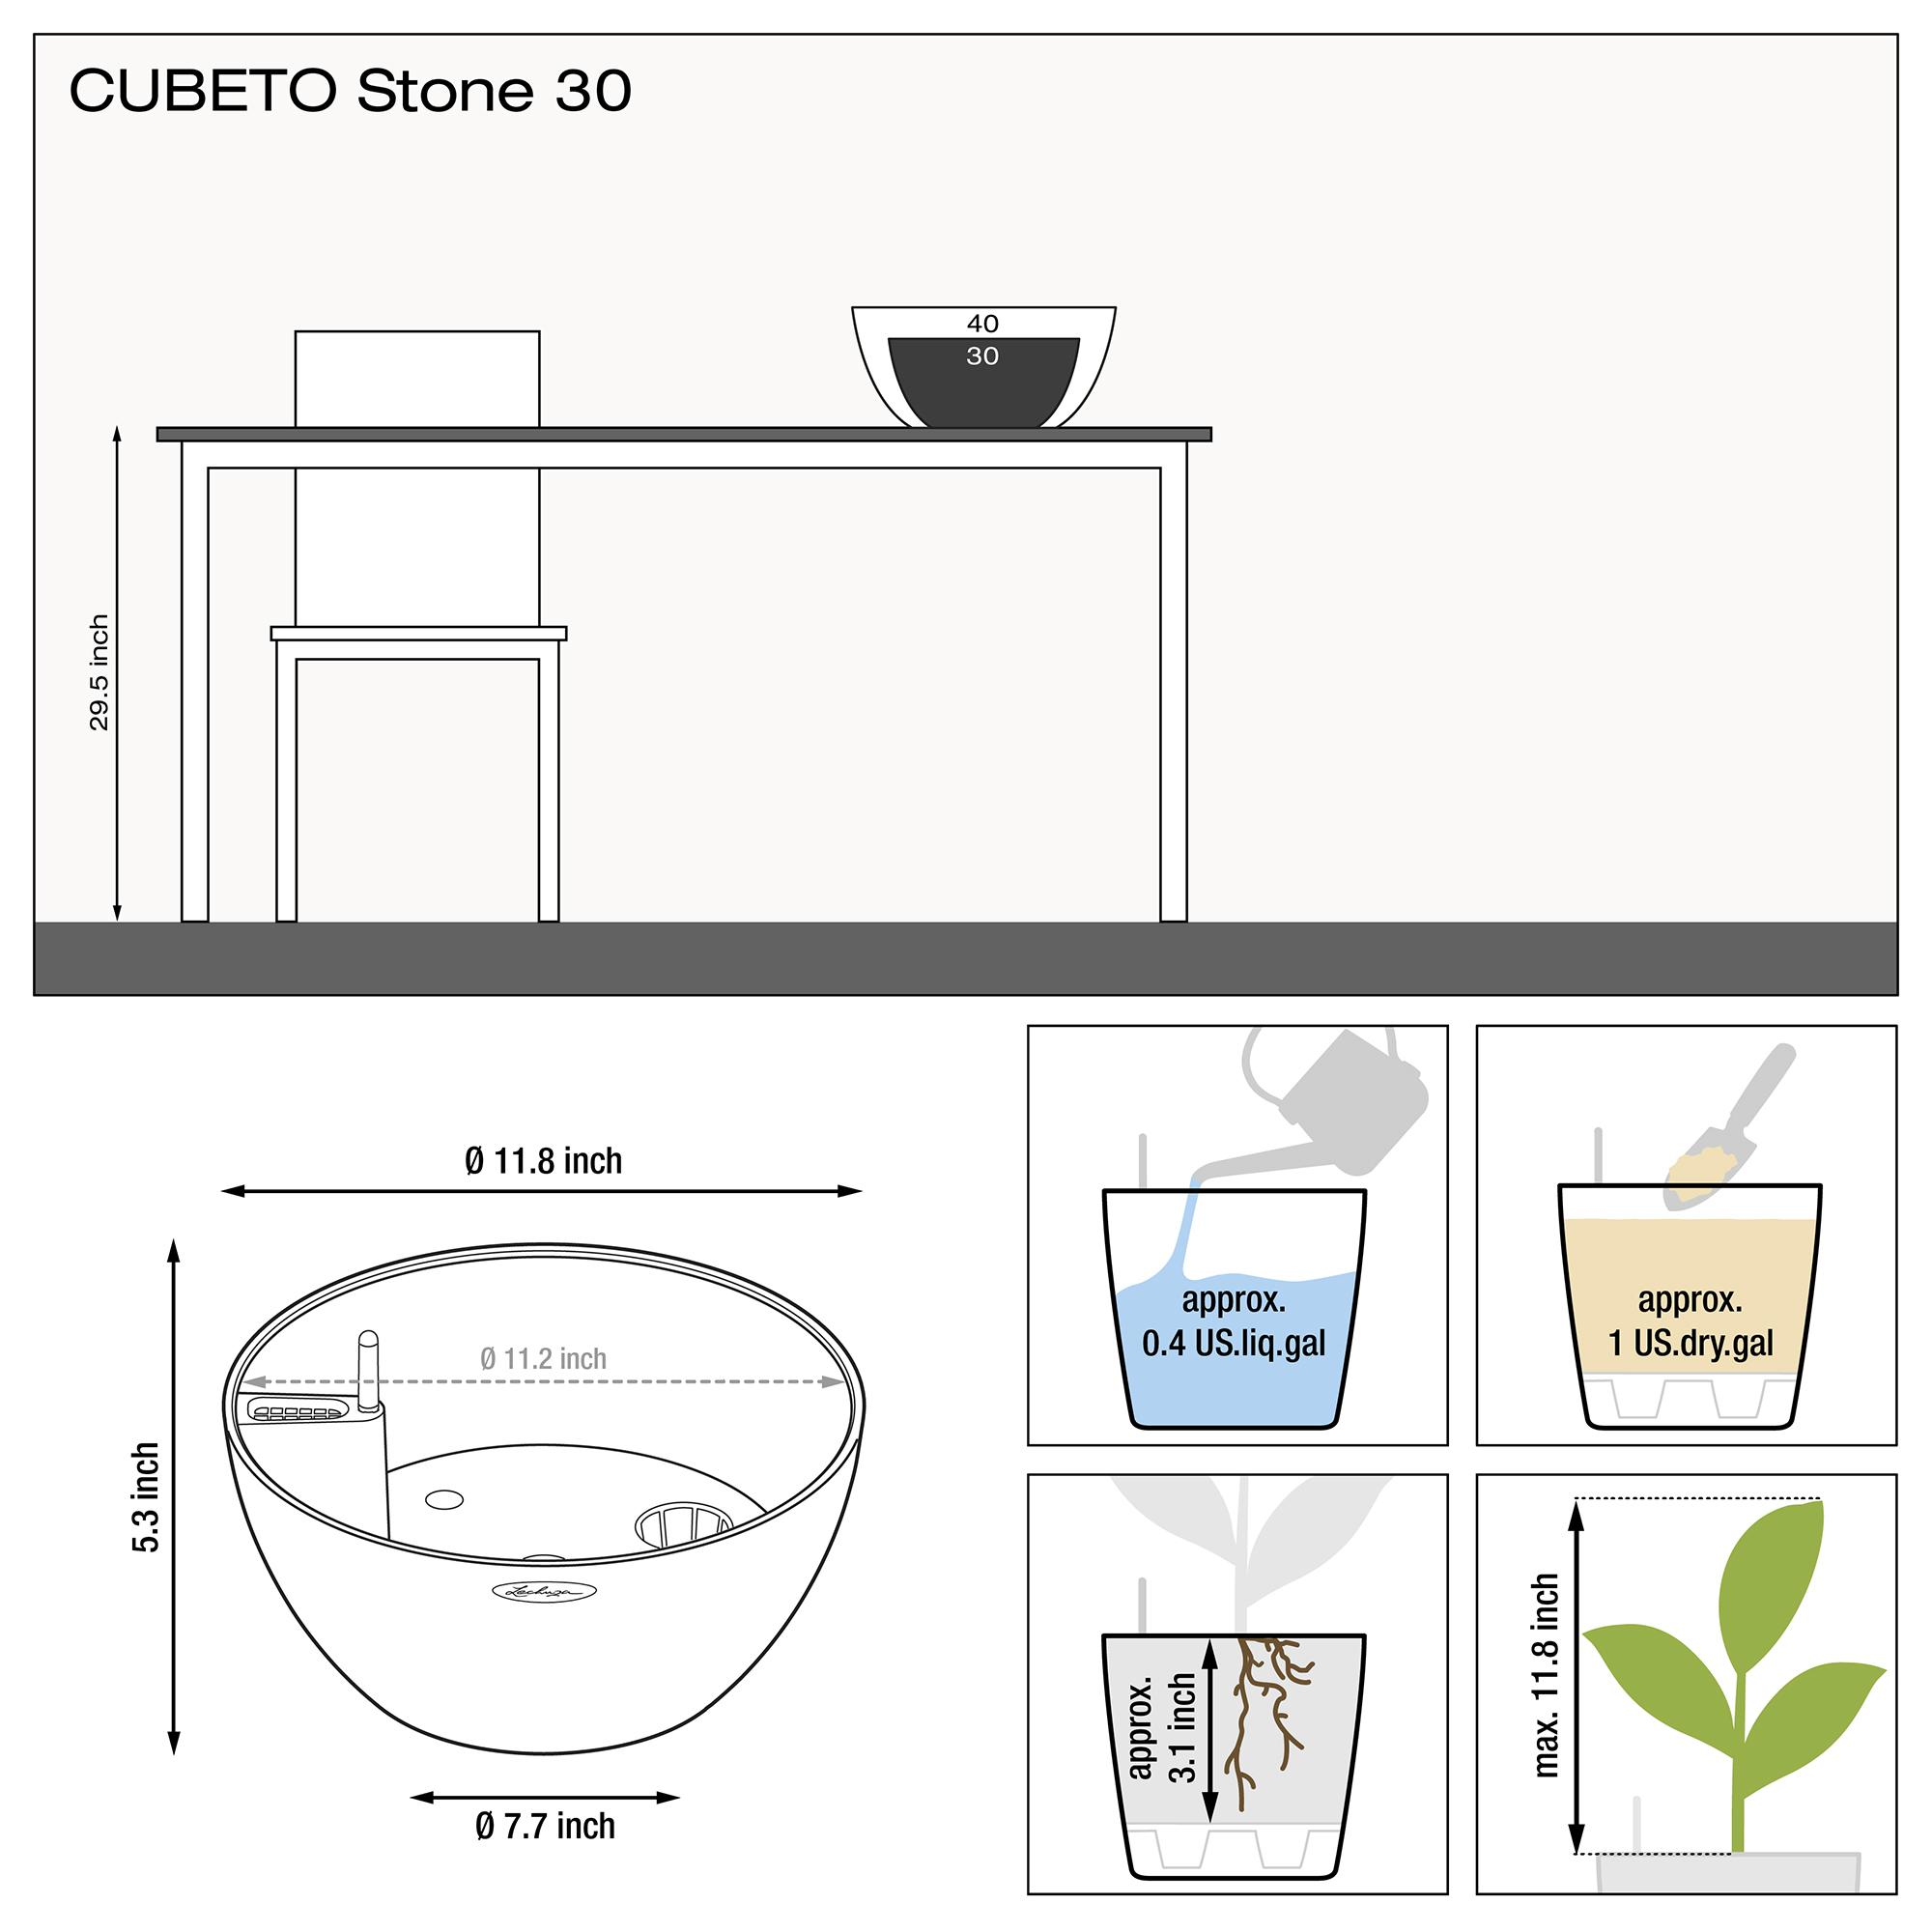 le_cubeto-stone30_product_addi_nz_us